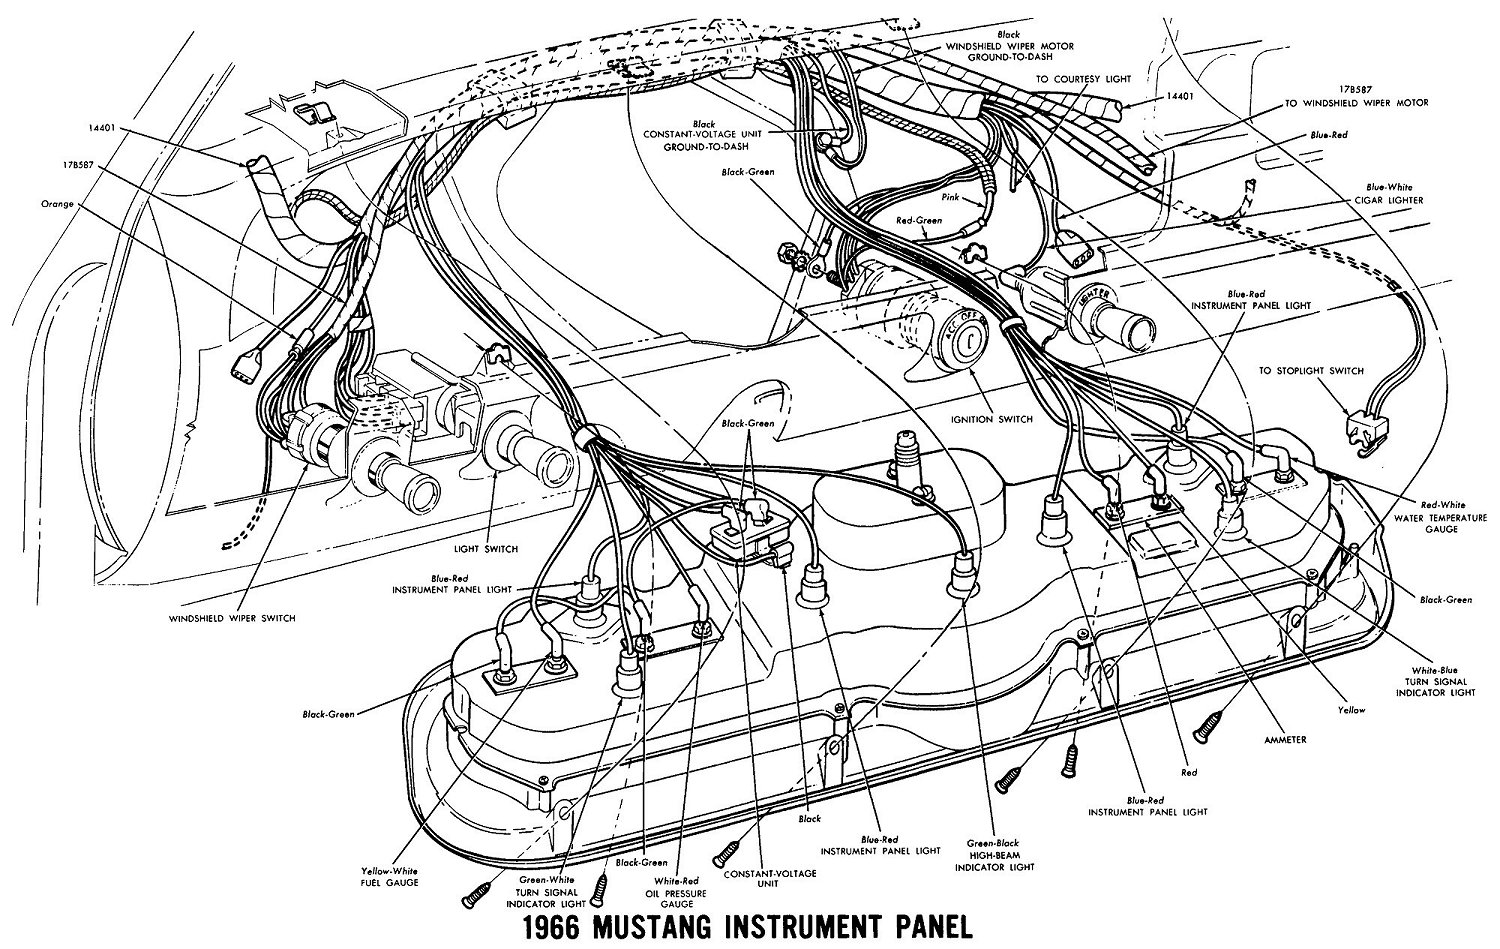 66instr vintage mustang wiring diagrams mustang wiring diagrams at gsmx.co